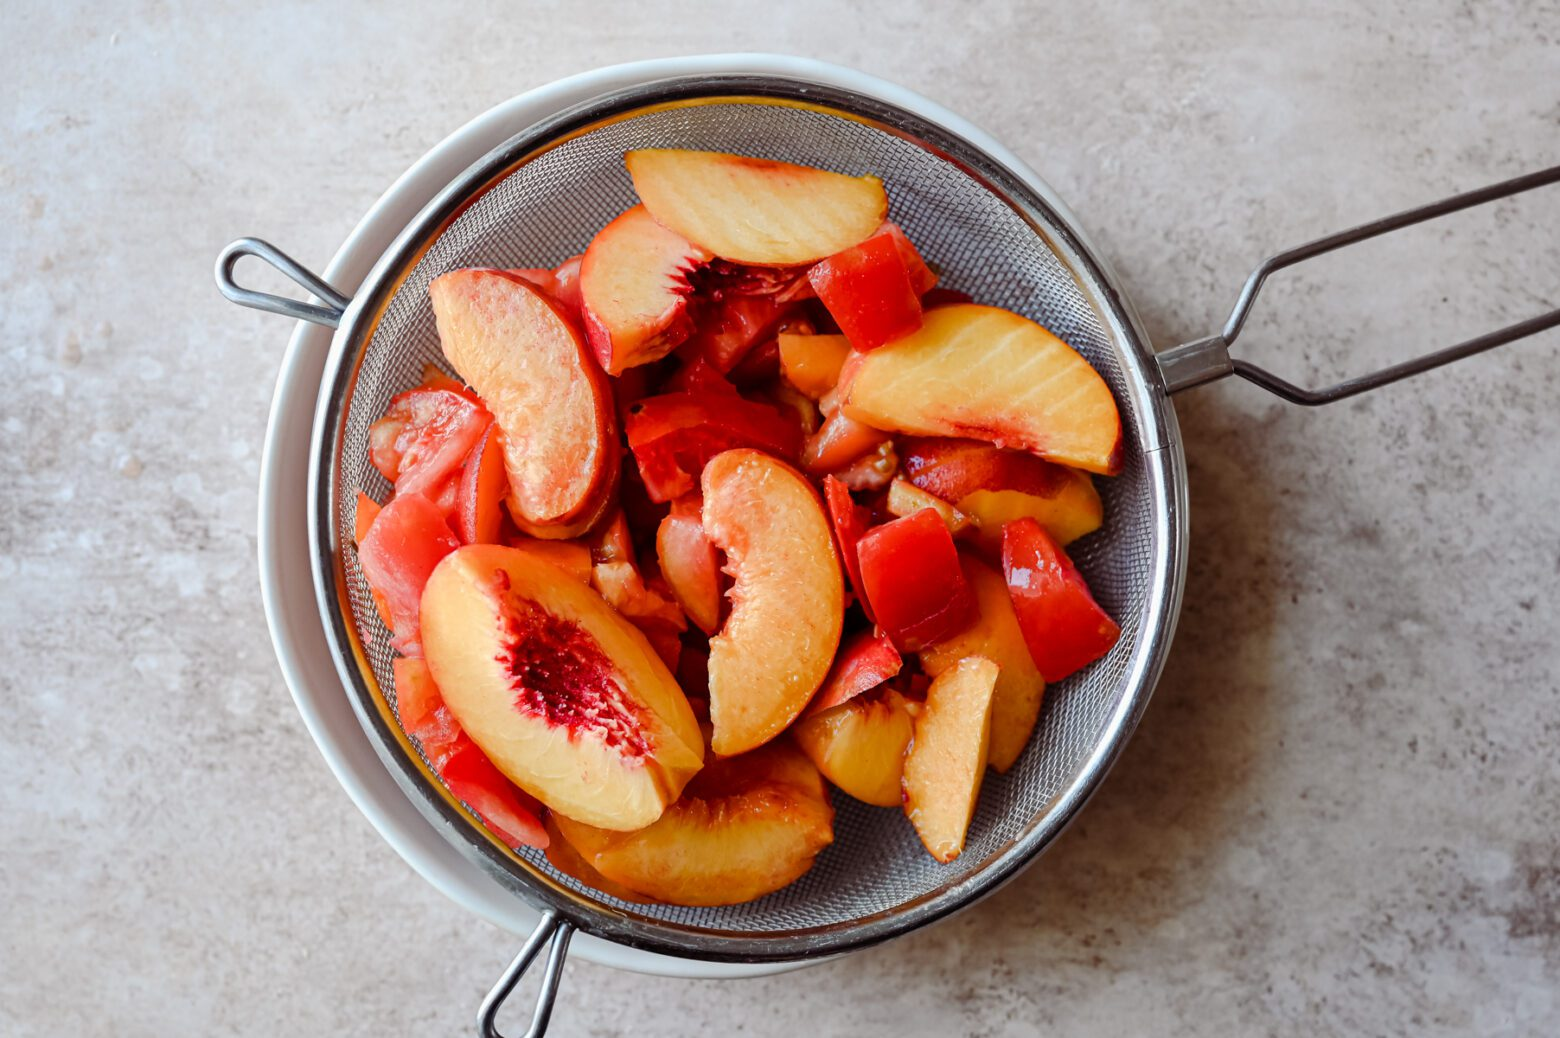 sliced peaches and tomatoes in colander